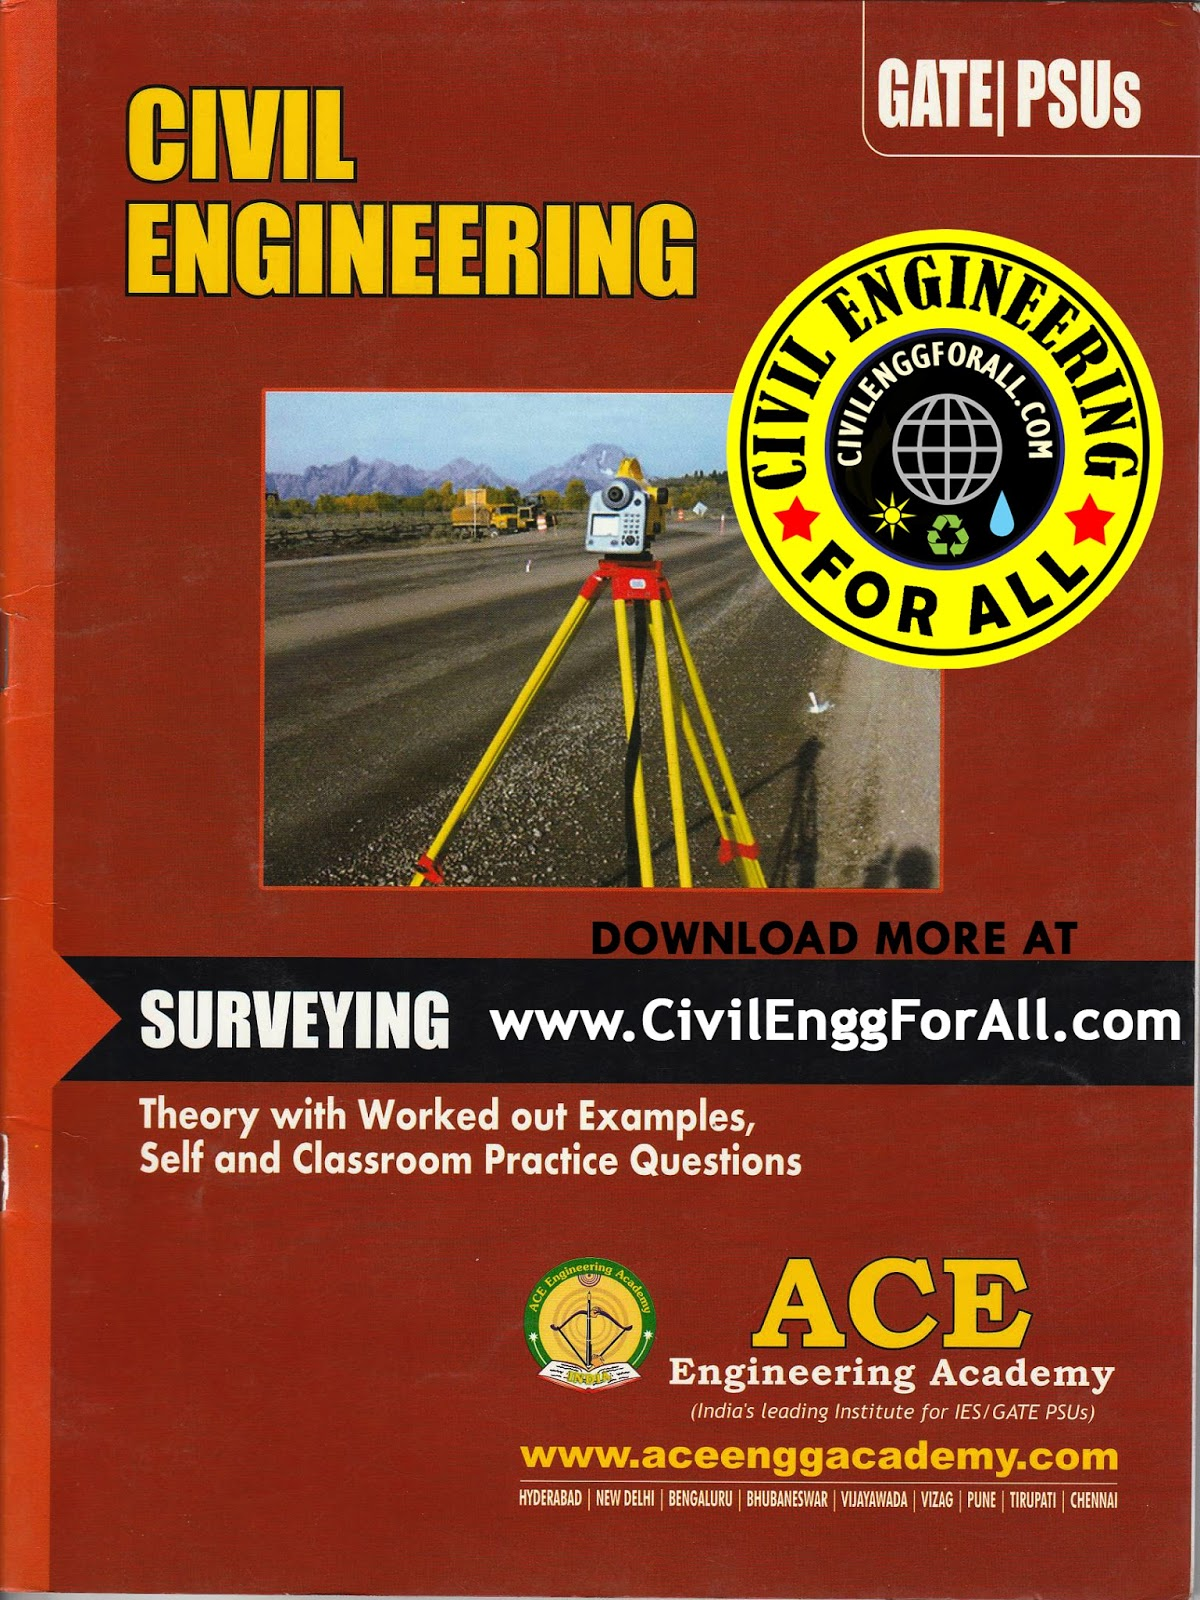 GATE MATERIAL] Surveying – Civil Engineering – Ace